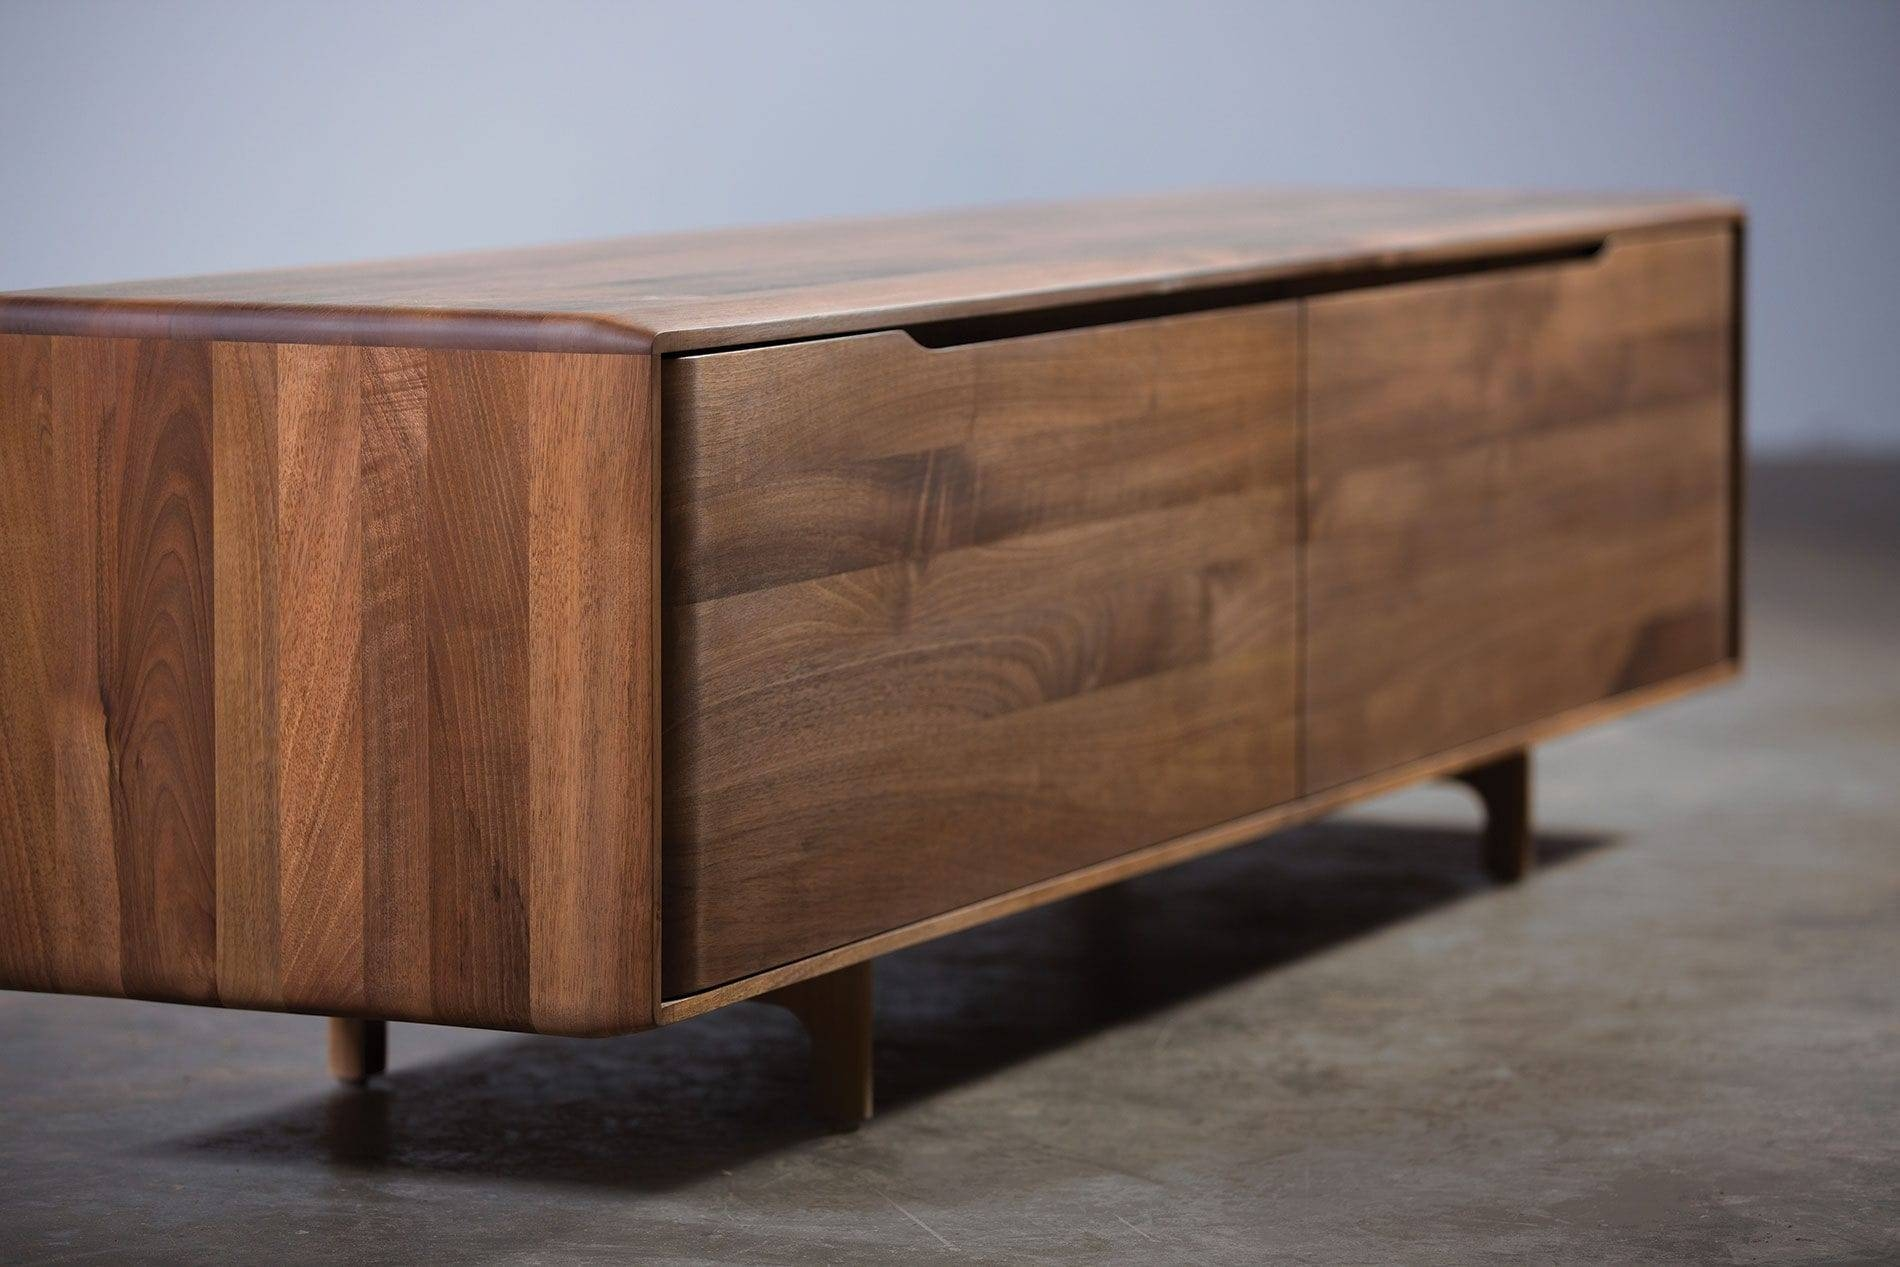 Contemporary Sideboard / Oak / Walnut / Solid Wood – Invito With Best And Newest Solid Wood Sideboards (#2 of 15)